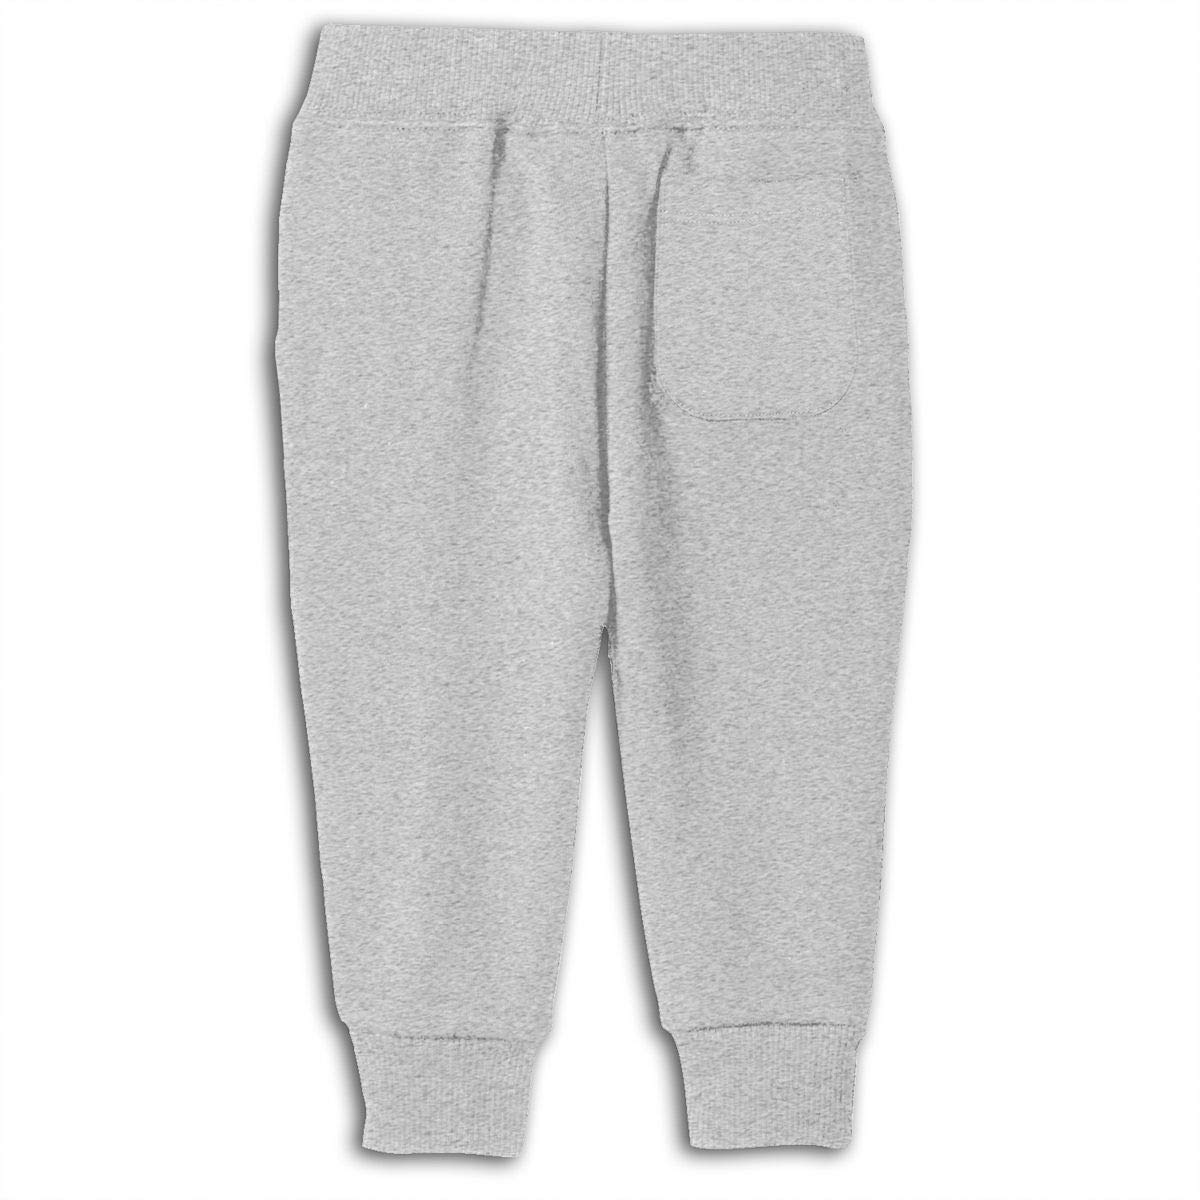 Printed Shark Fin Sea Wave Childrens Boys Girls Unisex Sports Sweatpants